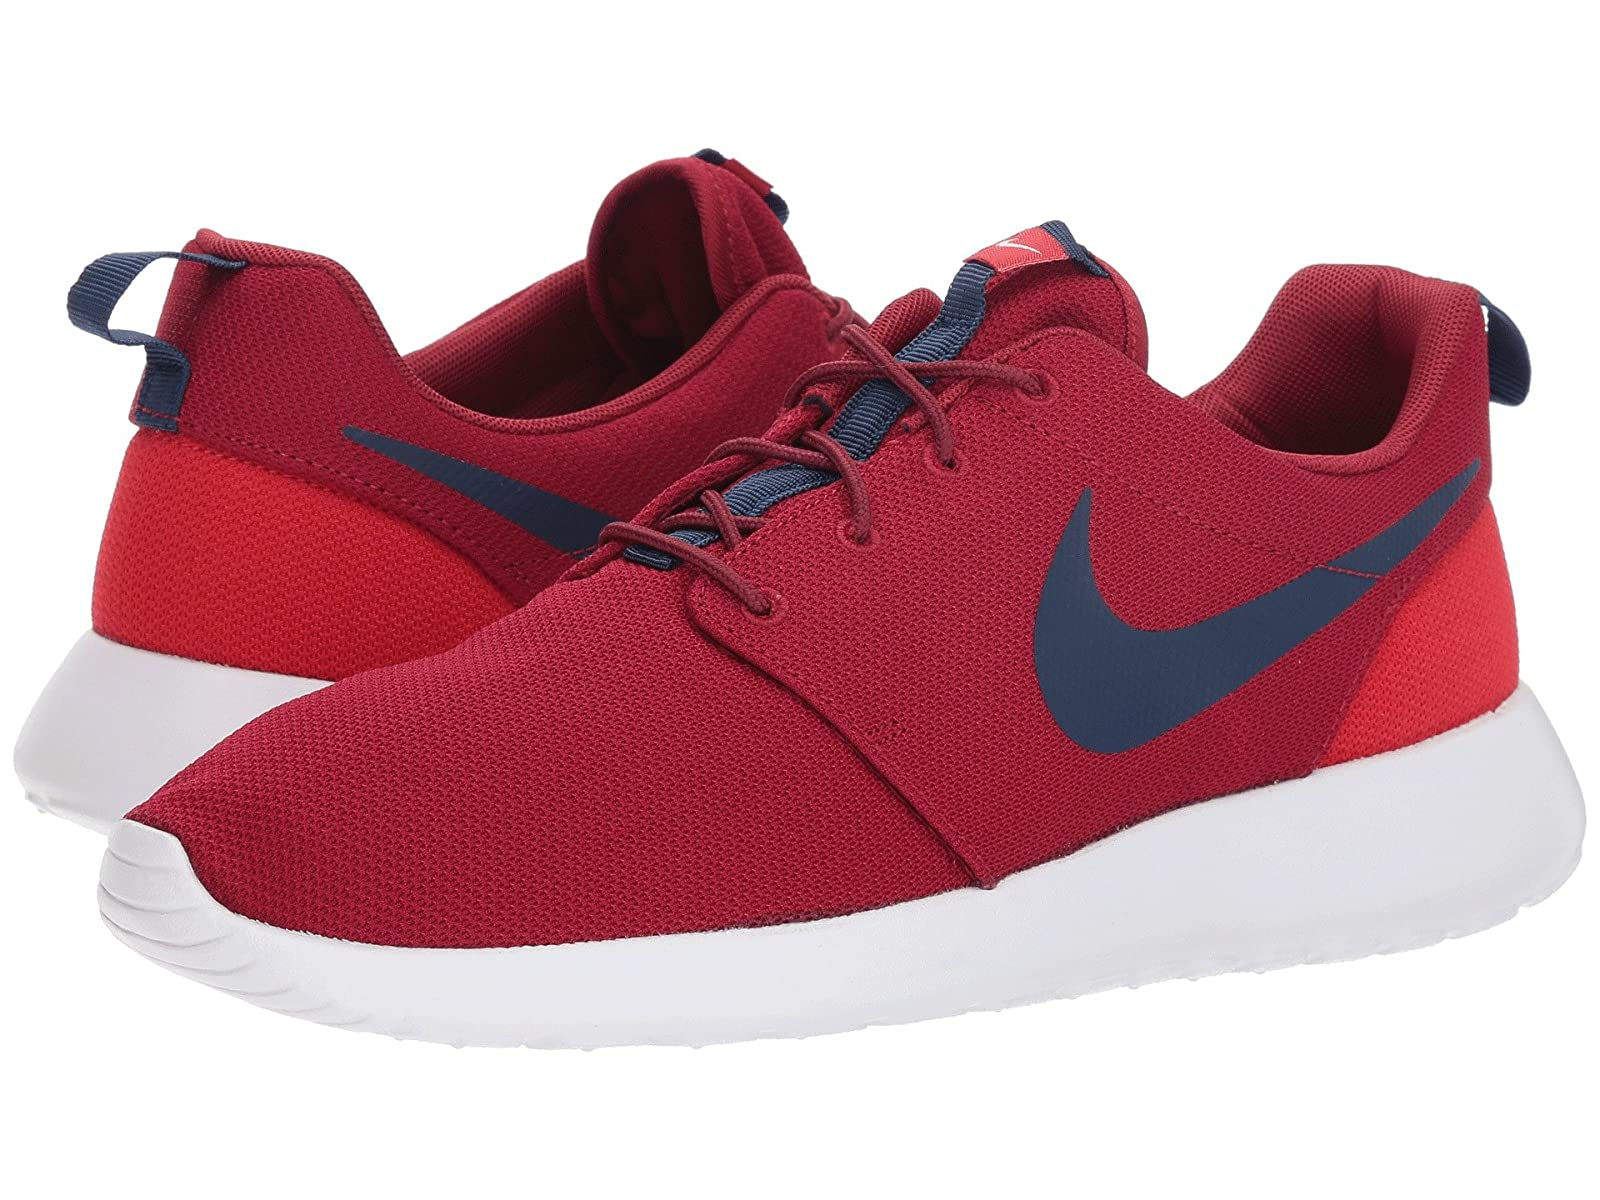 Nike Roshe OneAtmospheric grades have affordable shoes